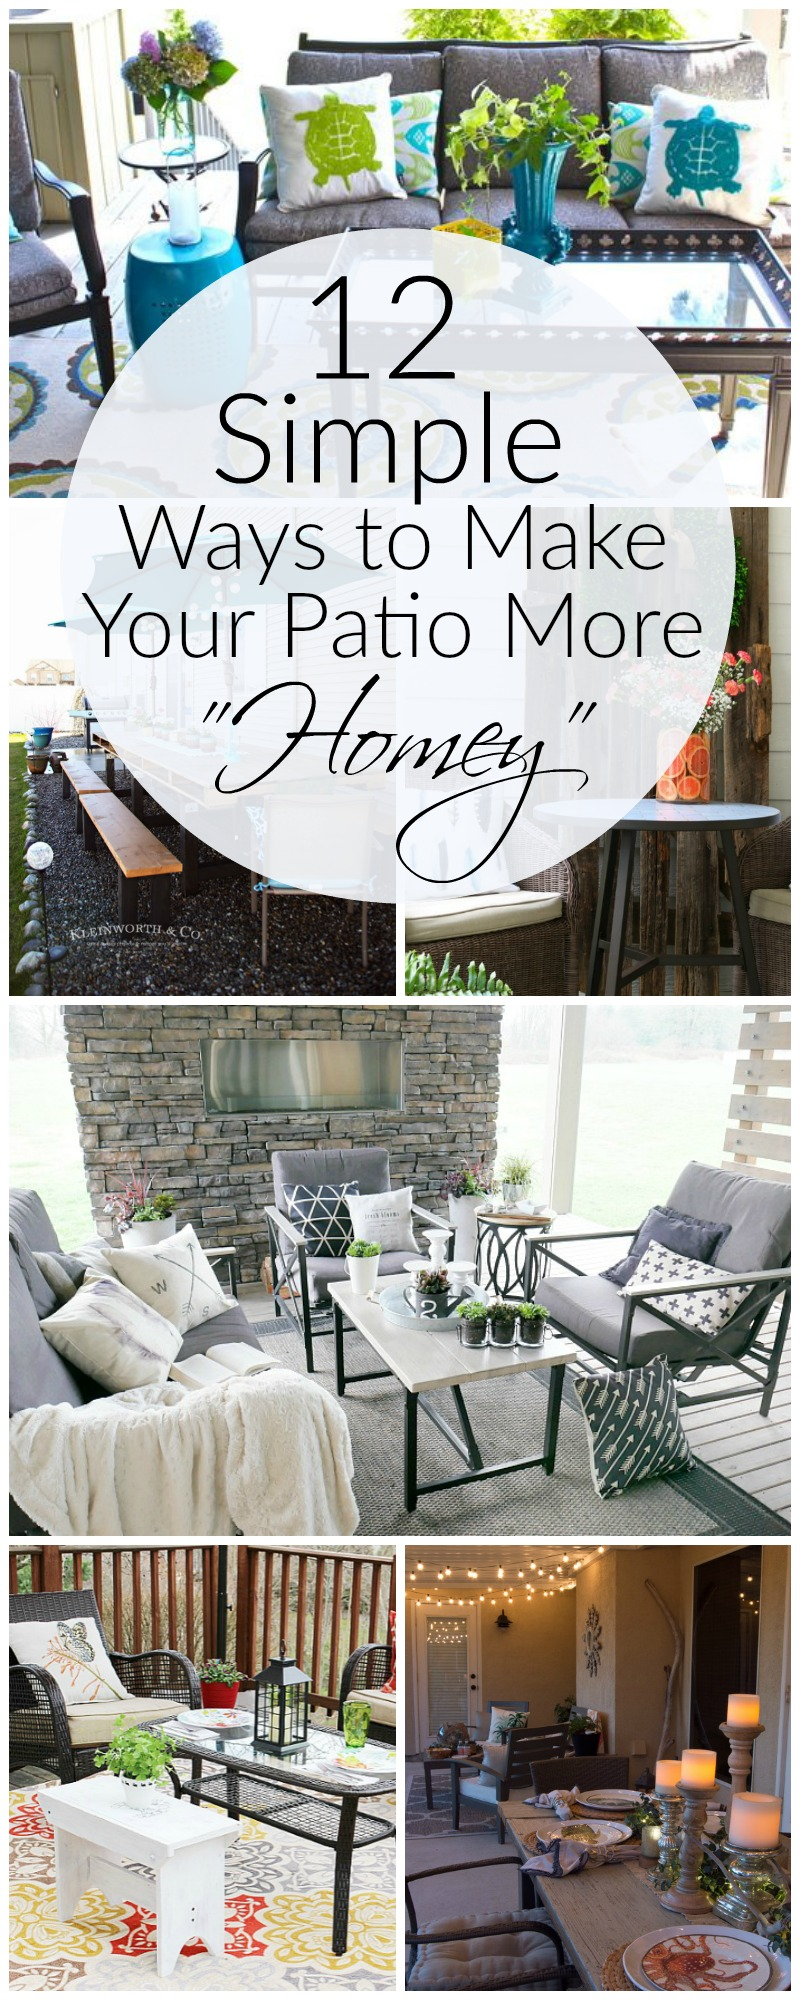 12 Simple Ways To Make Your Patio Or Deck More Homey. Add Coziness By Doing